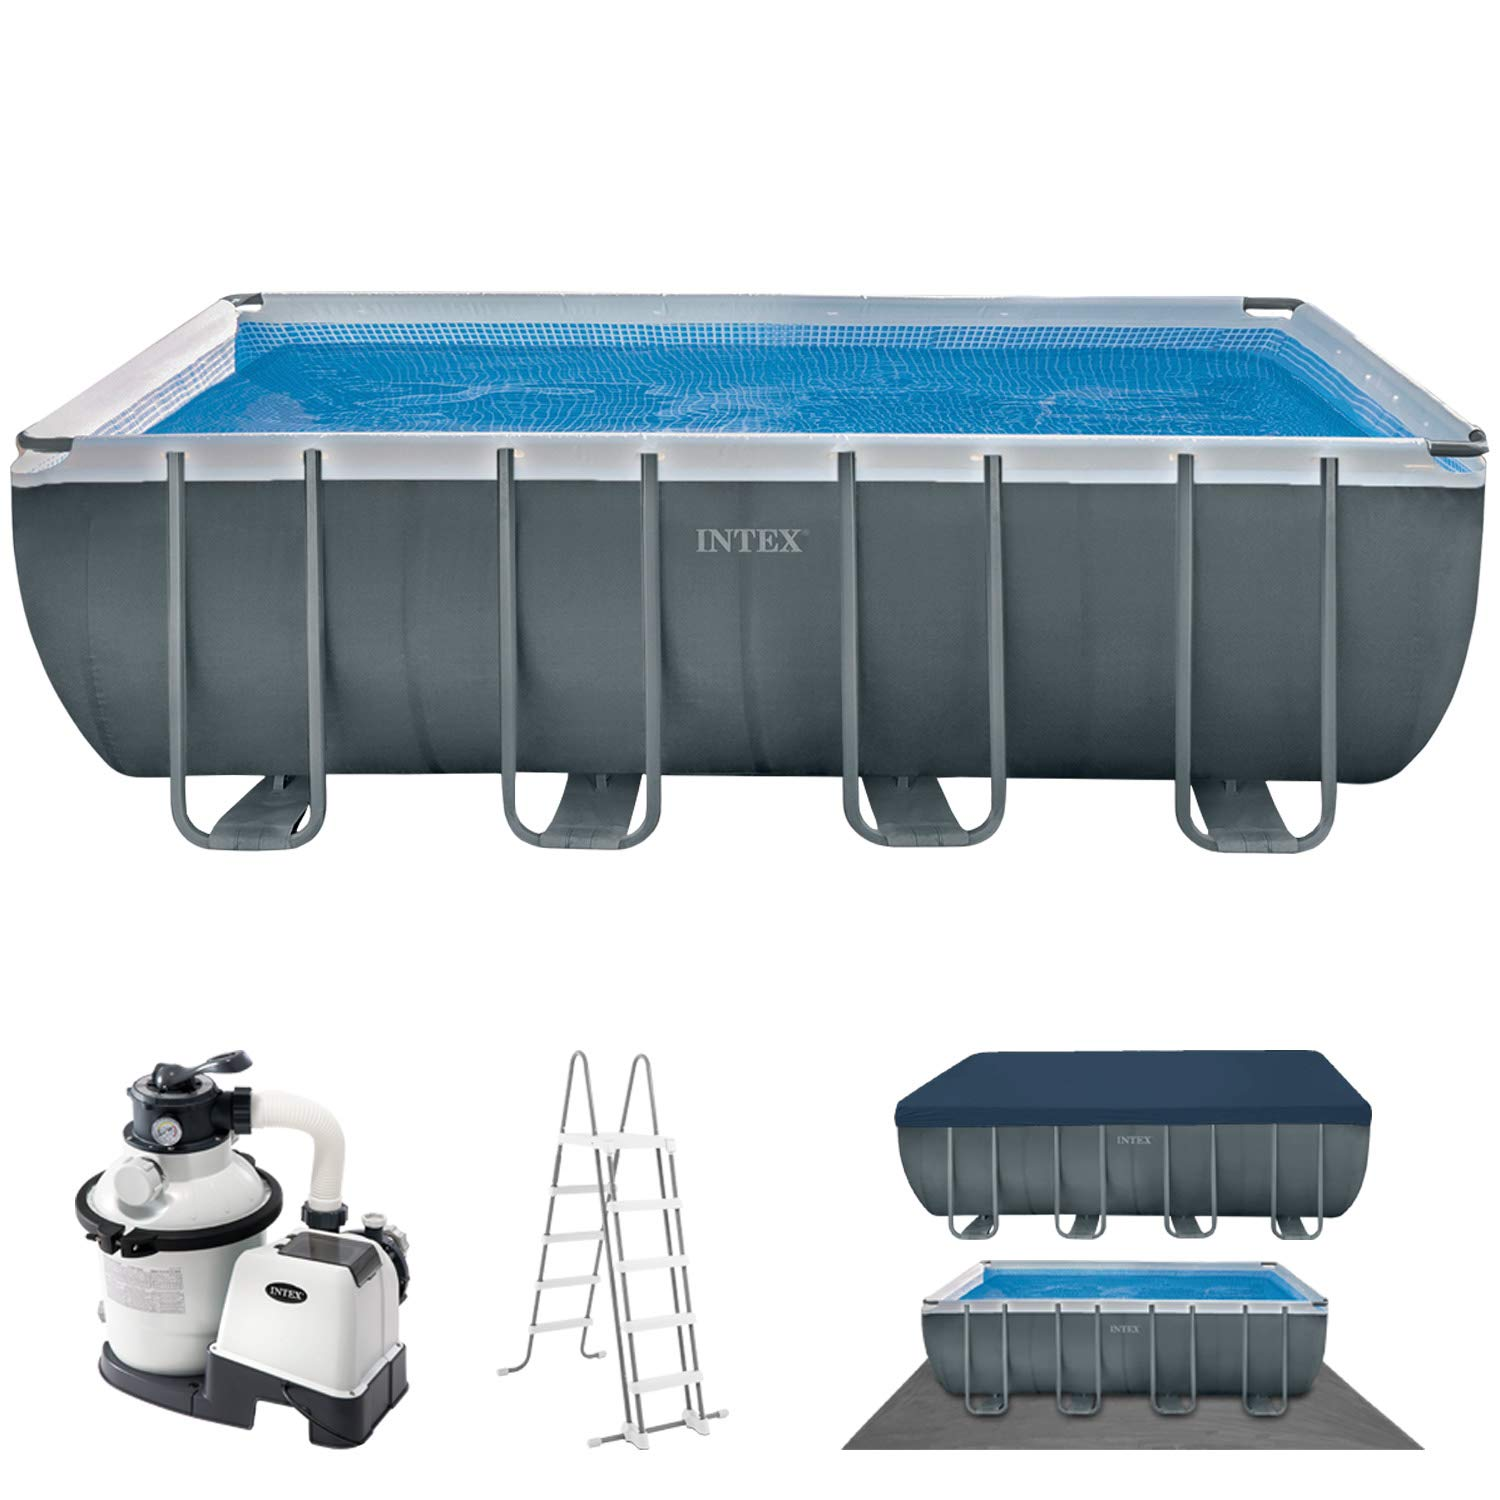 Intex 28352 Ultra Frame - Piscina (549 x 274 x 132 cm): Amazon.es: Jardín